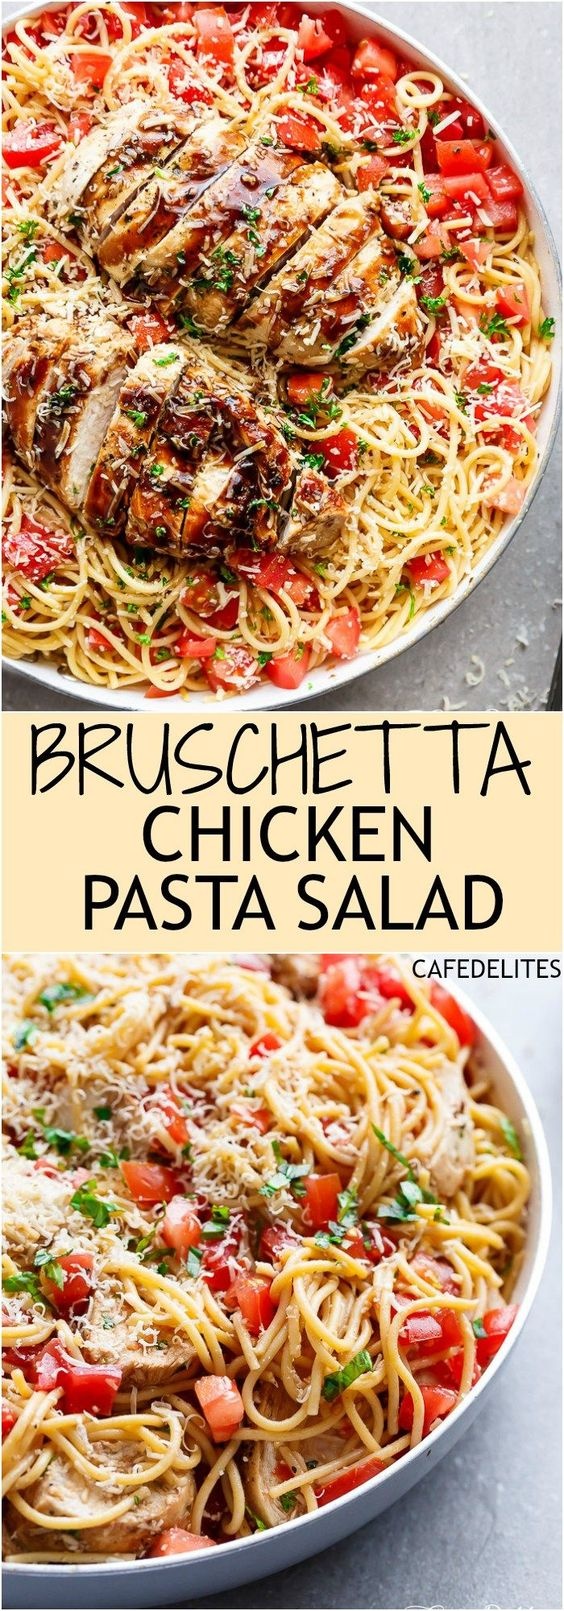 Bruschetta Chicken Pasta Salad Recipe via Cafe Delites - This is a must make for any occasion in minutes! Filled with Italian seasoned grilled chicken, garlic and parmesan cheese! Easy Pasta Salad Recipes - The BEST Yummy Barbecue Side Dishes, Potluck Favorites and Summer Dinner Party Crowd Pleasers